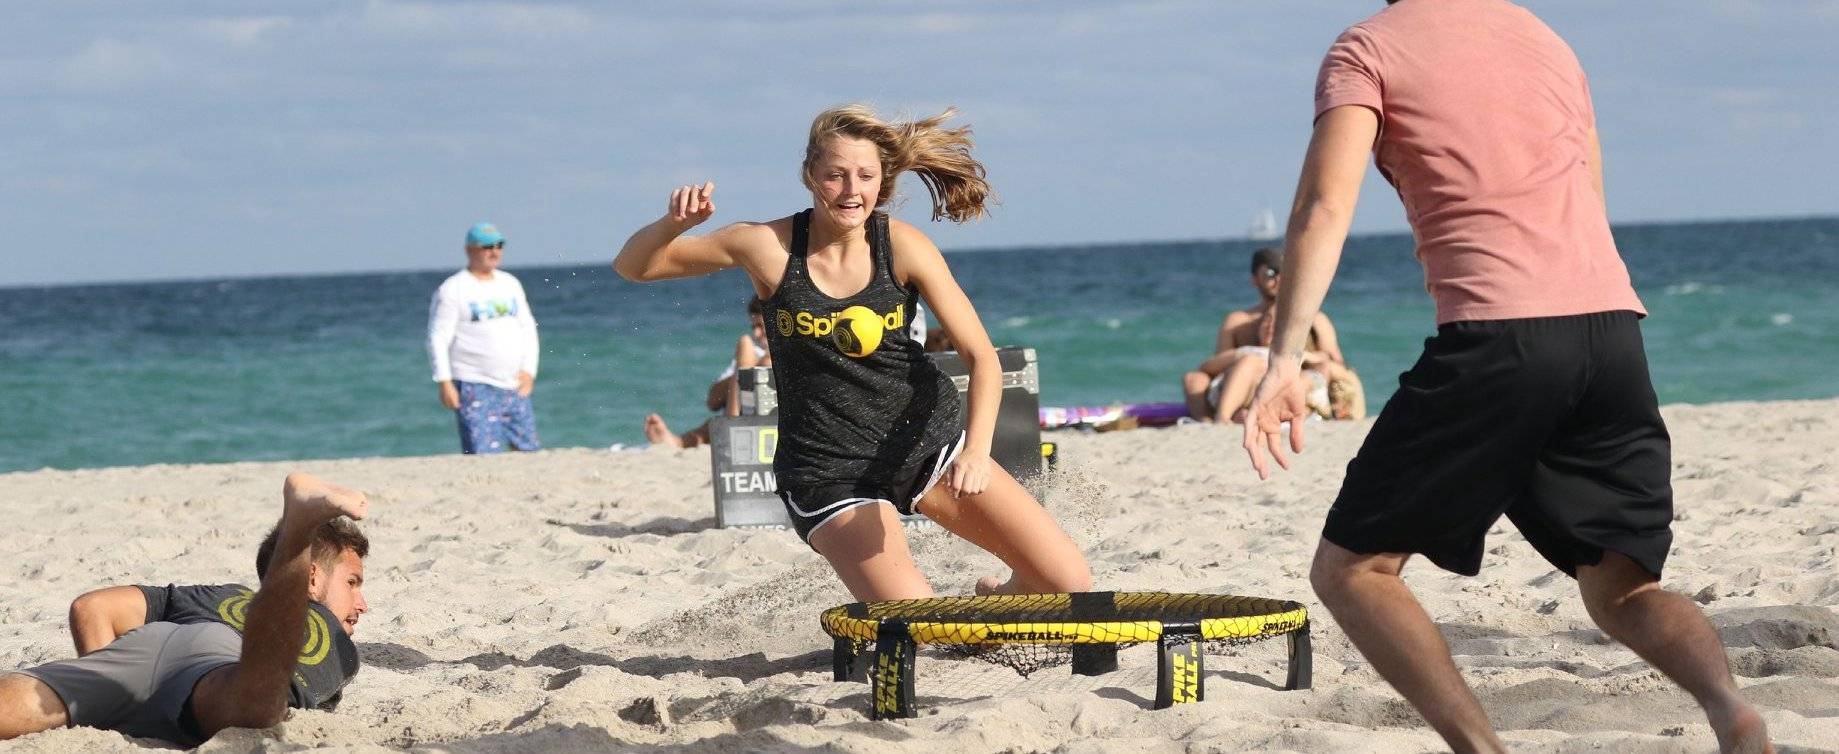 East Tour 3 – Spikeball Roundnet Association